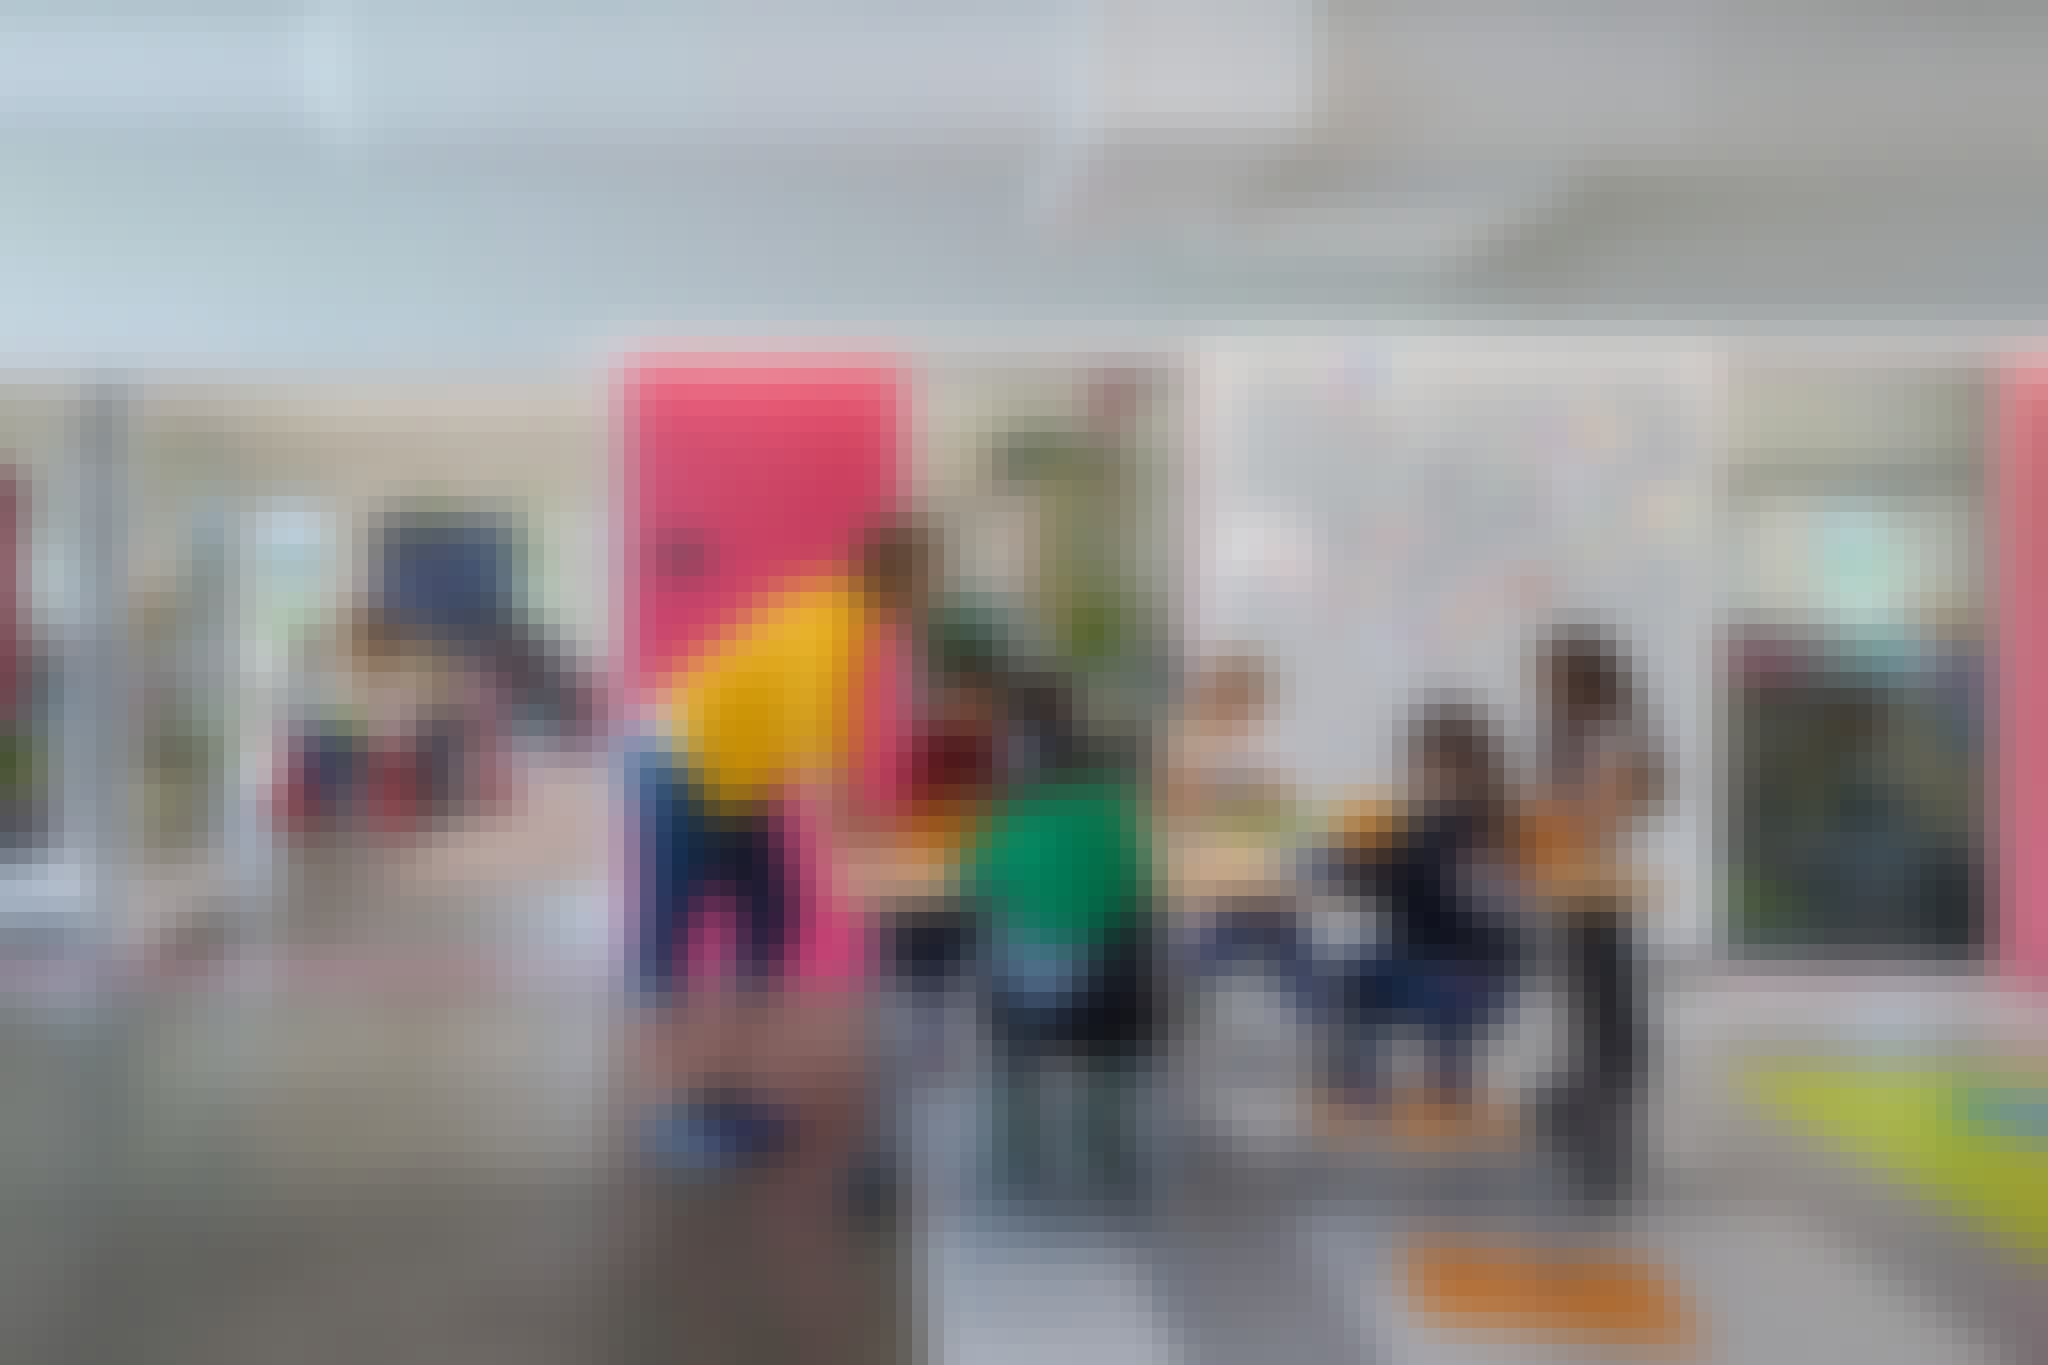 collaborative learning in schools with learning hub and flexible folding glass walls with teacher and kids